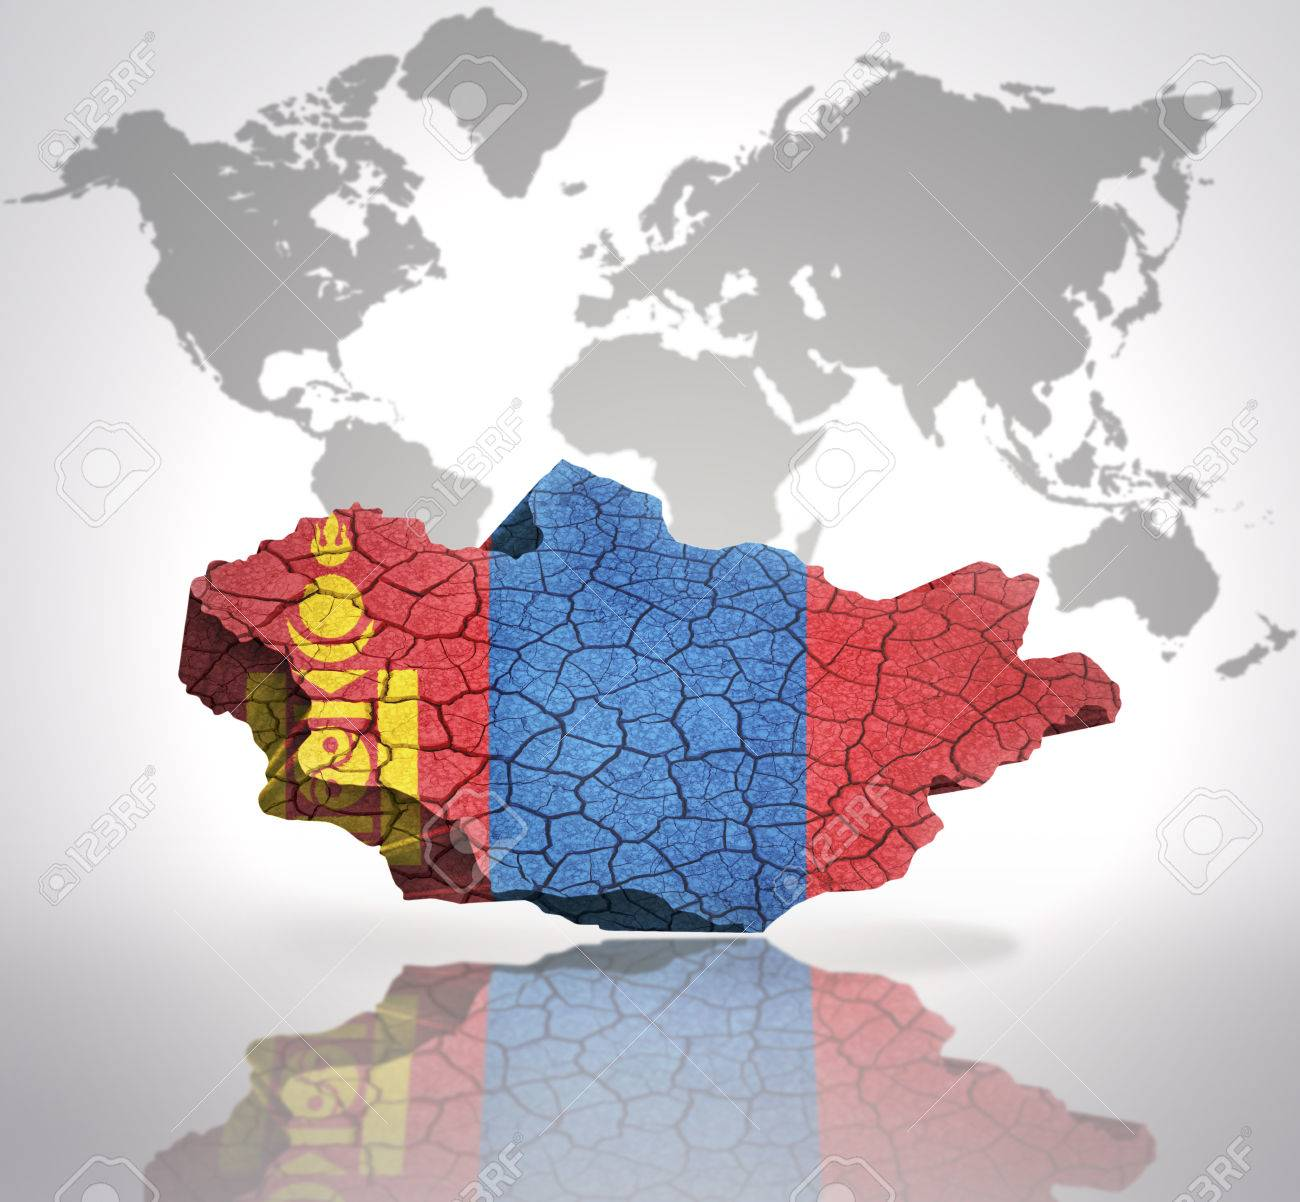 Map of mongolia with mongolian flag on a world map background stock map of mongolia with mongolian flag on a world map background stock photo 32849762 gumiabroncs Images